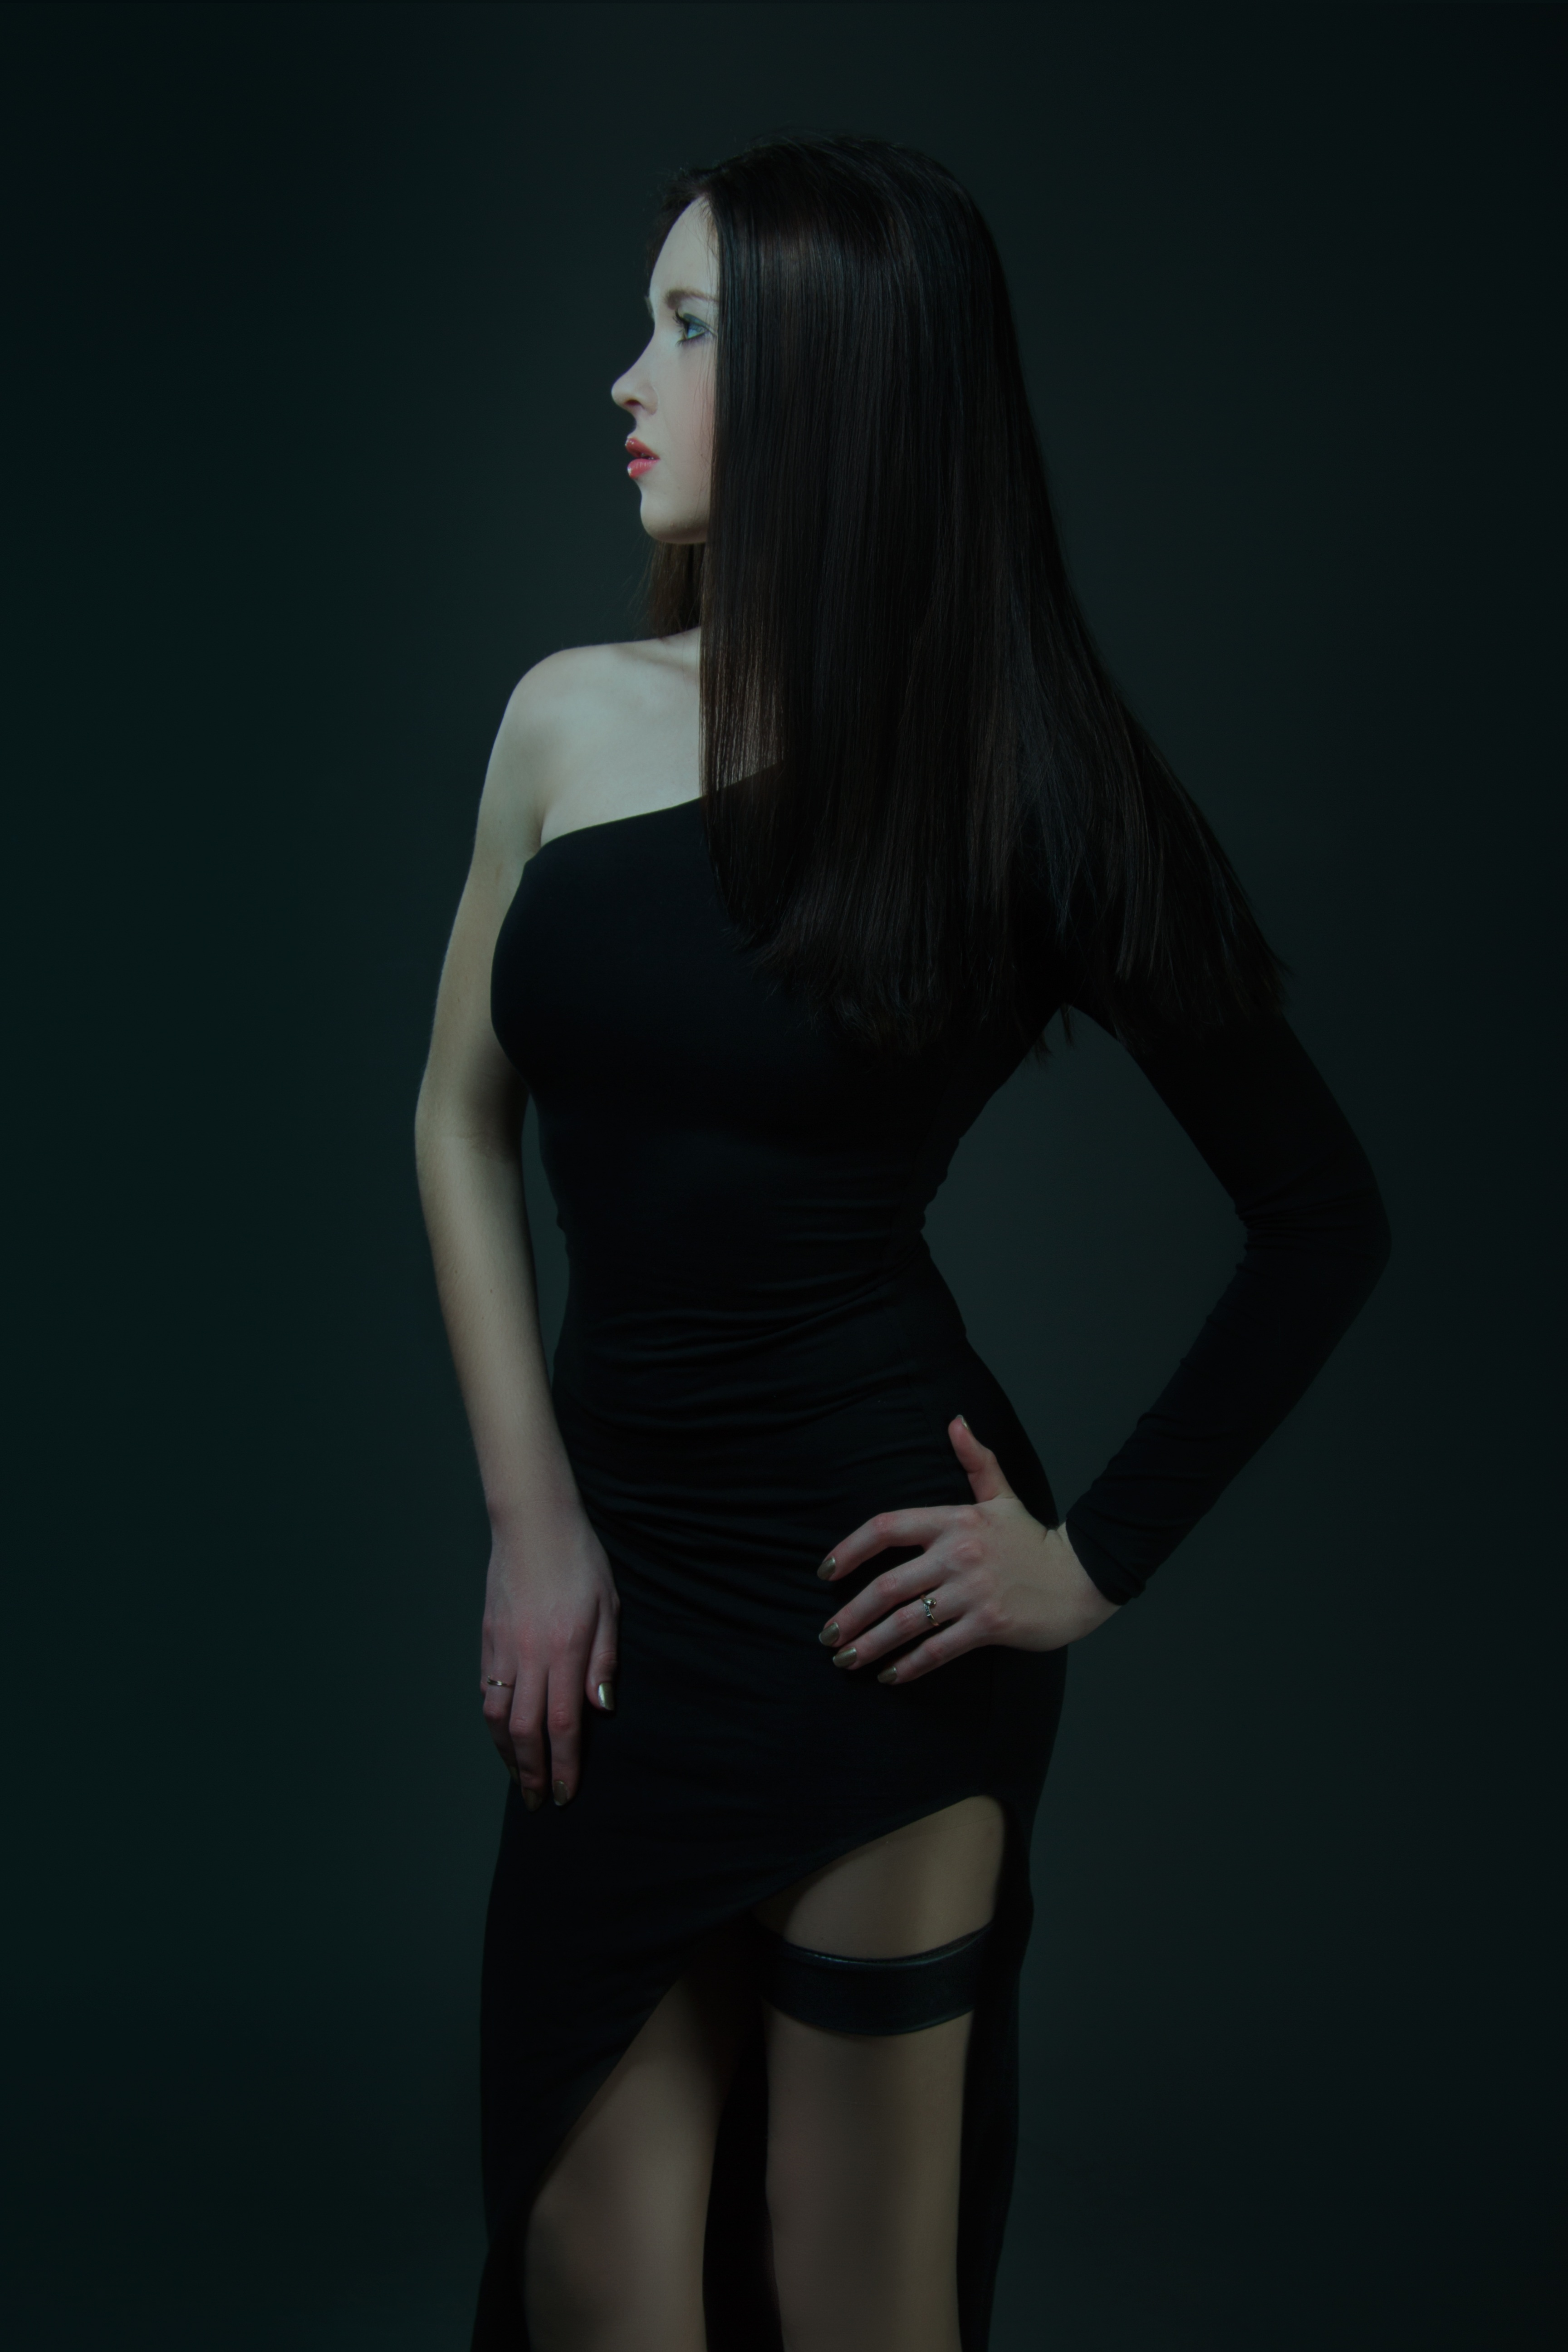 Lady in black photo